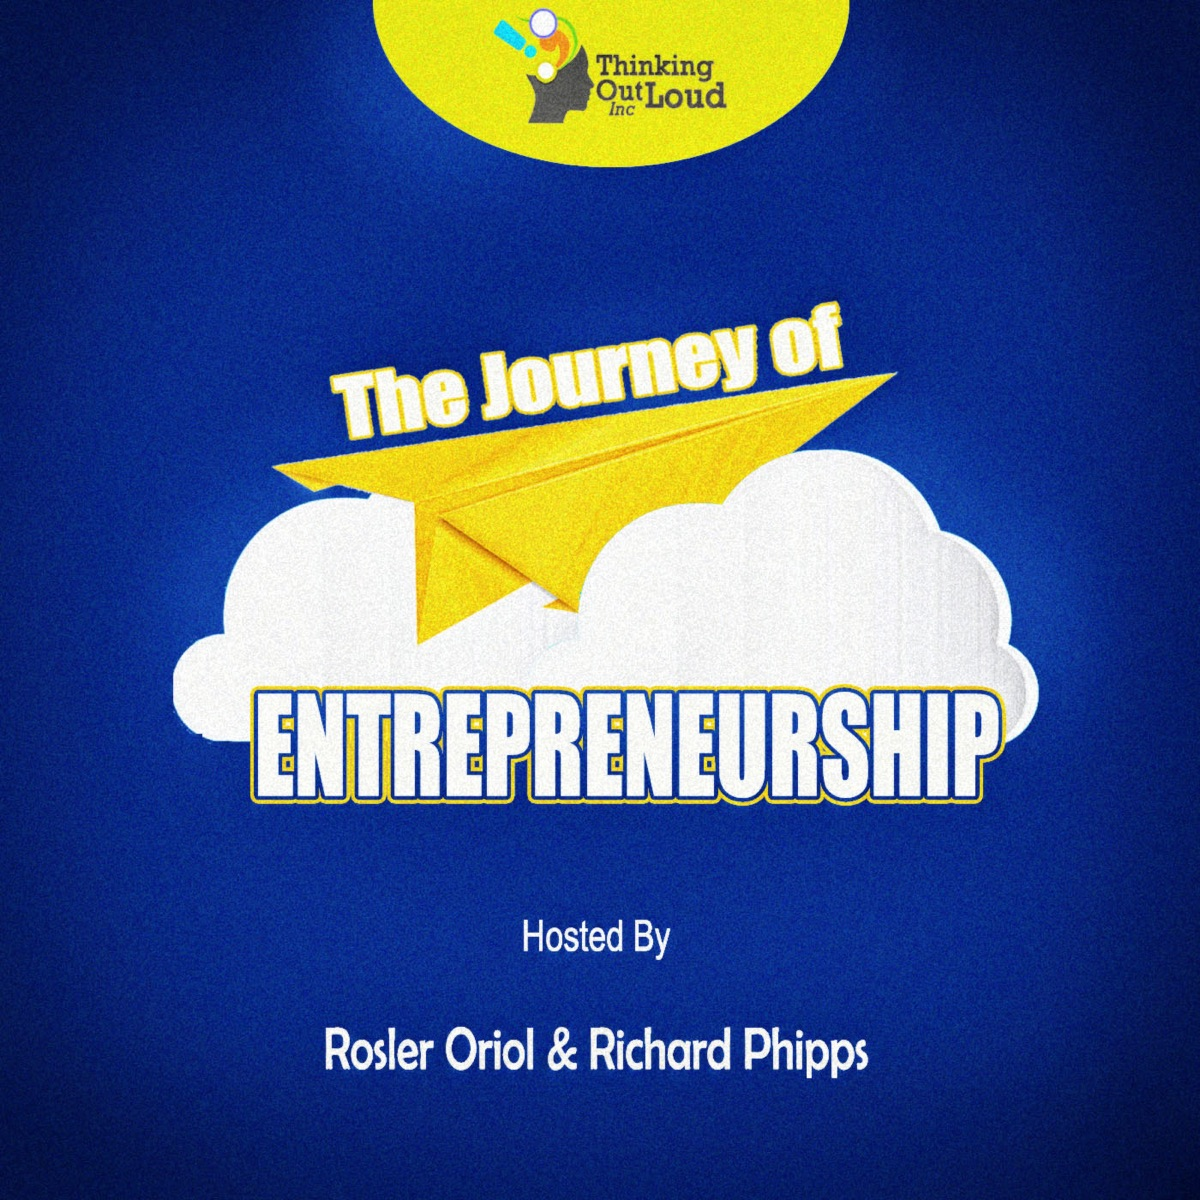 Journey of Entrepreneurship